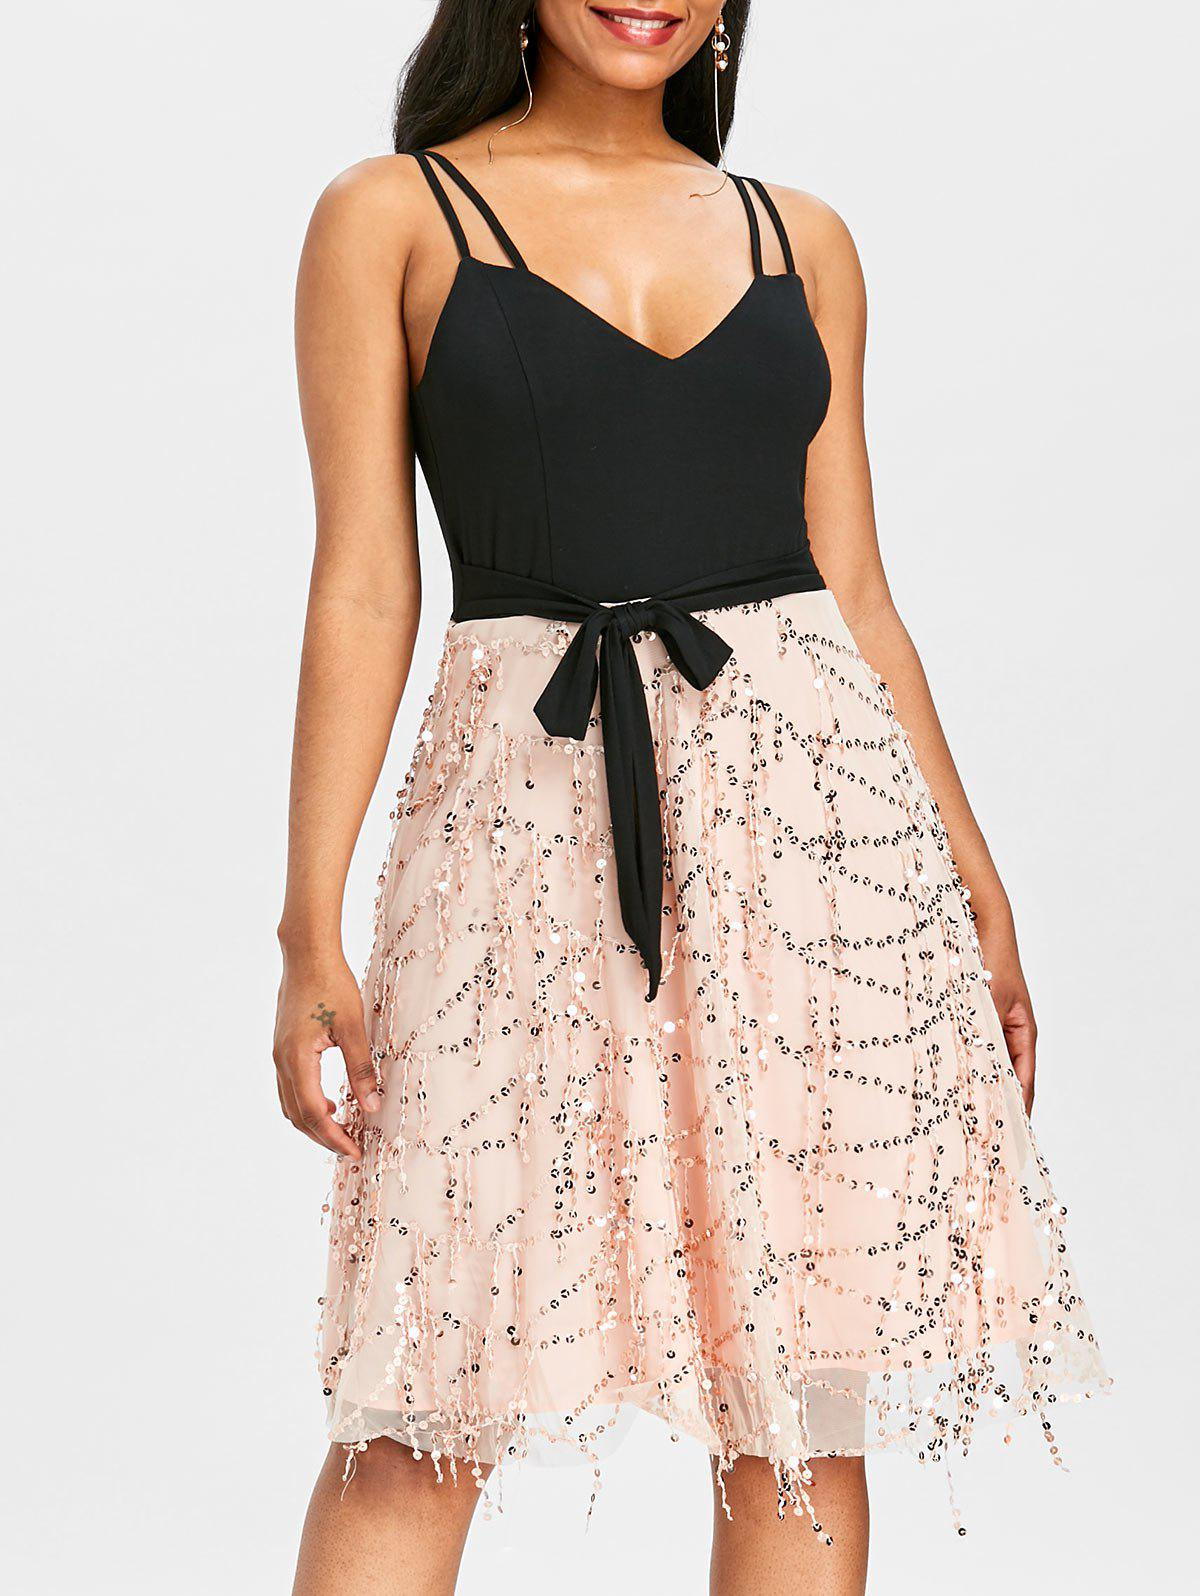 Store Double Straps Sequins Fit and Flare Dress